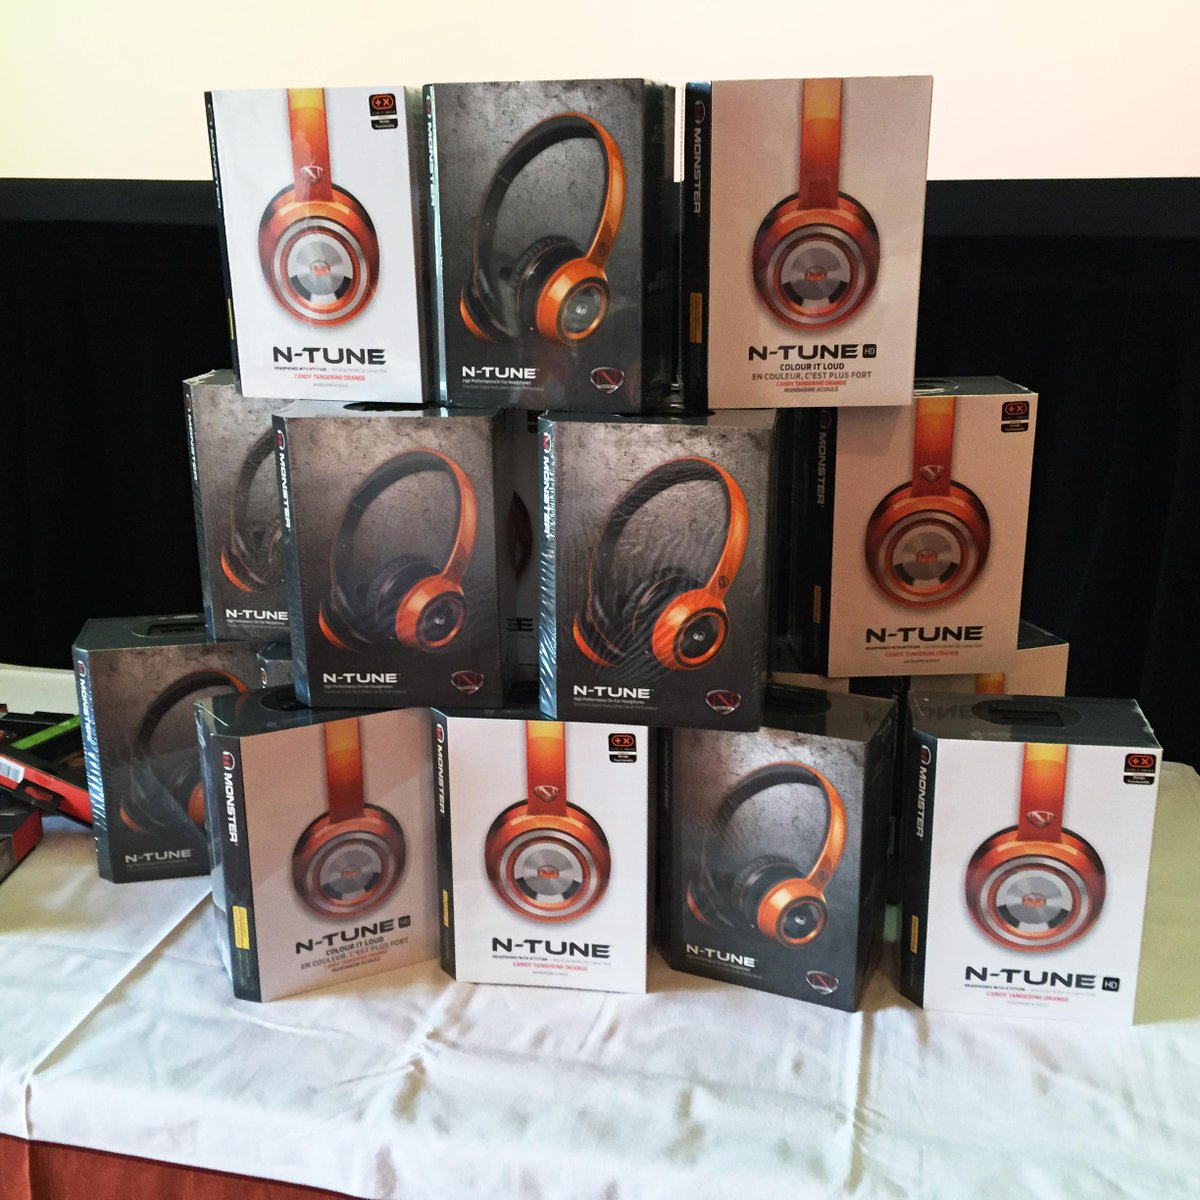 Wpromote: Thanks @MonsterProducts for helping us out with the best prizes ever! #ImagineCommerce http://t.co/Asavq2CLxx